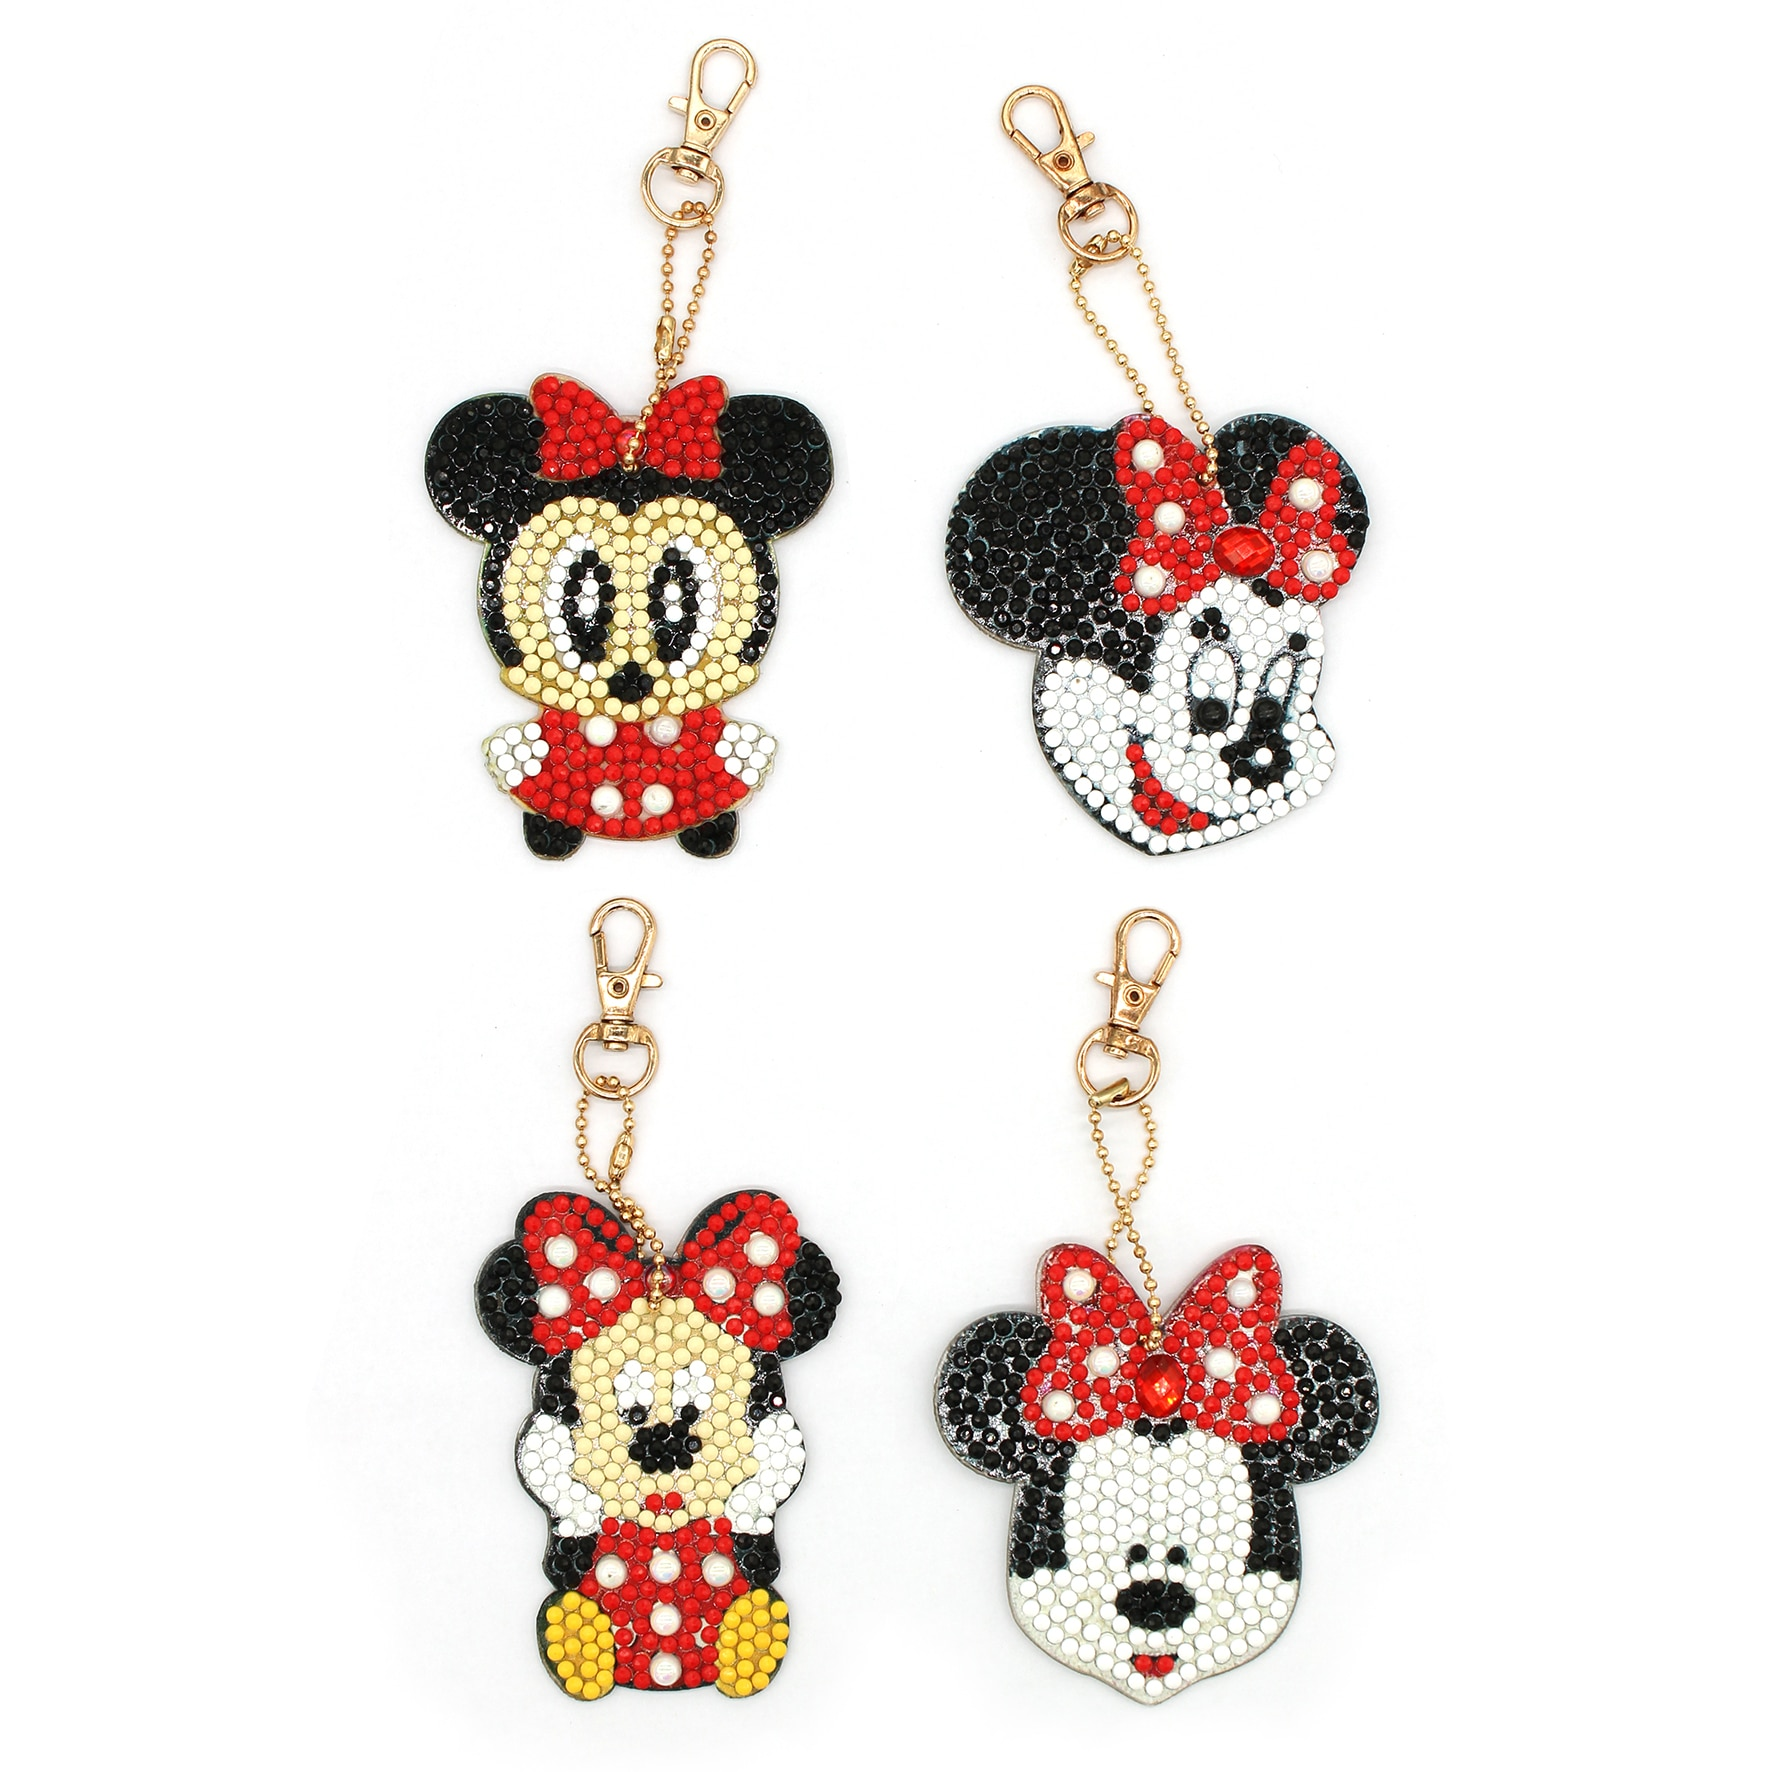 Inlay of diamond in Mickey Mouse characters including keychains